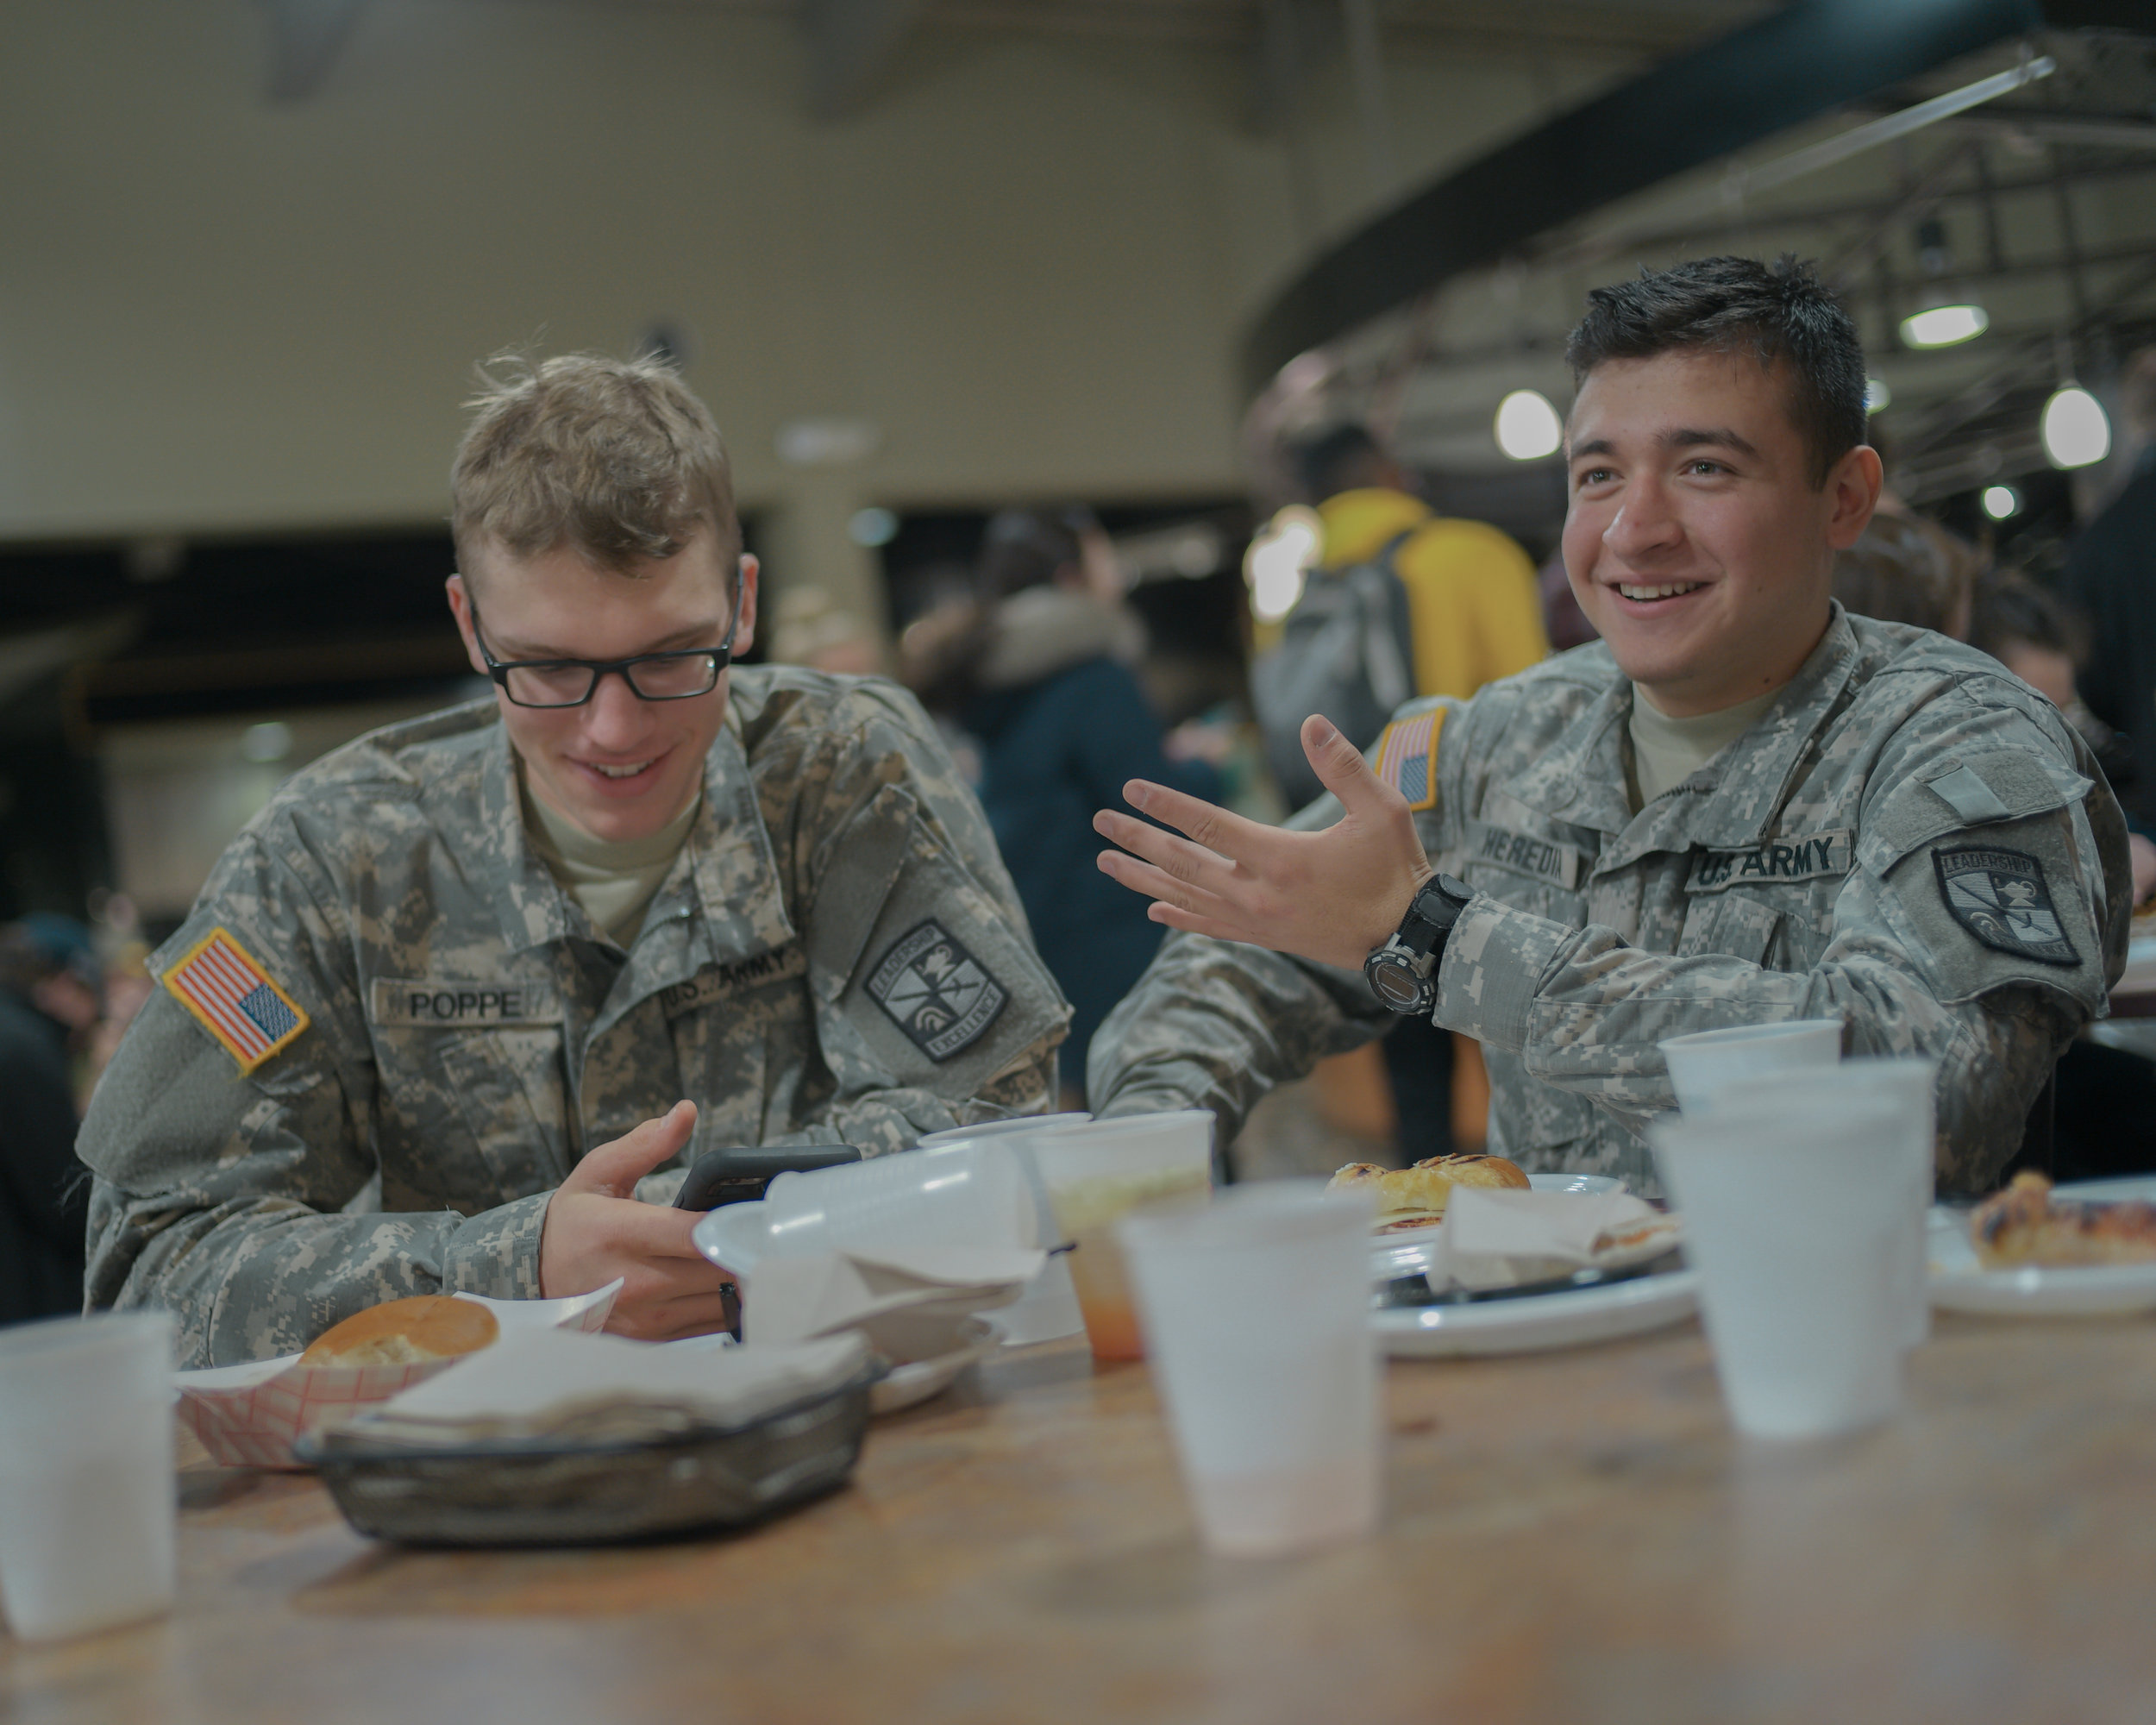 After an evening physical training session, Azuara-Heredia ate at Plaza 900 with fellow ROTC students on Nov. 29. As a scholarship recipient, he receives compensated room and board.